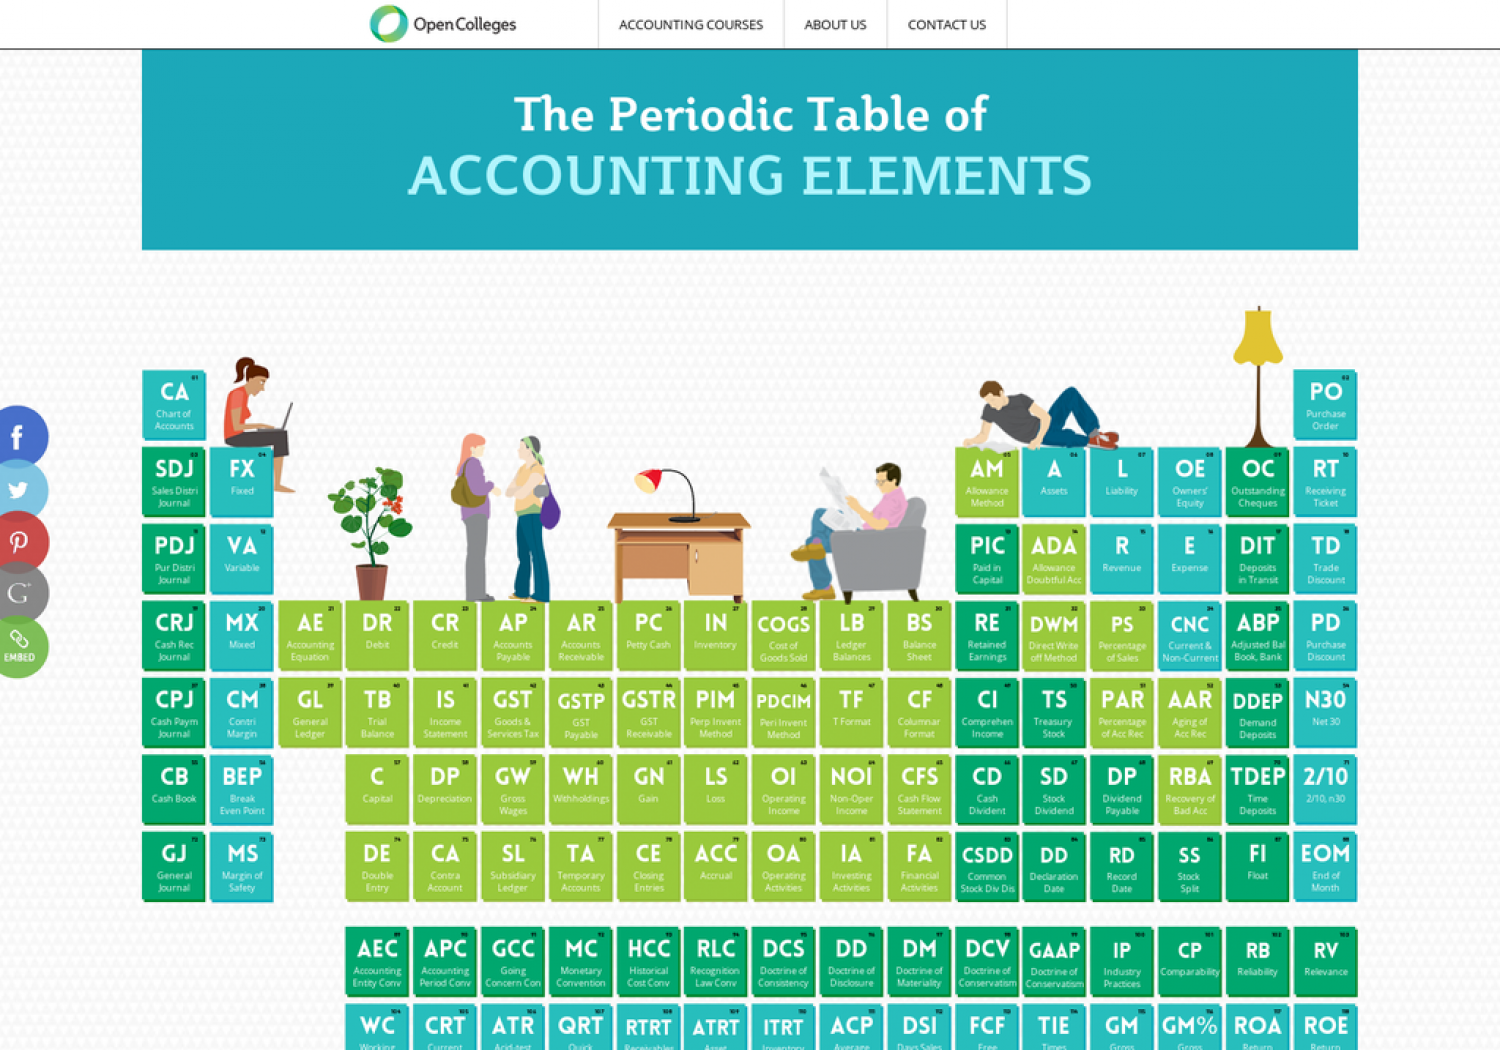 The Periodic Table of Accounting Elements Infographic